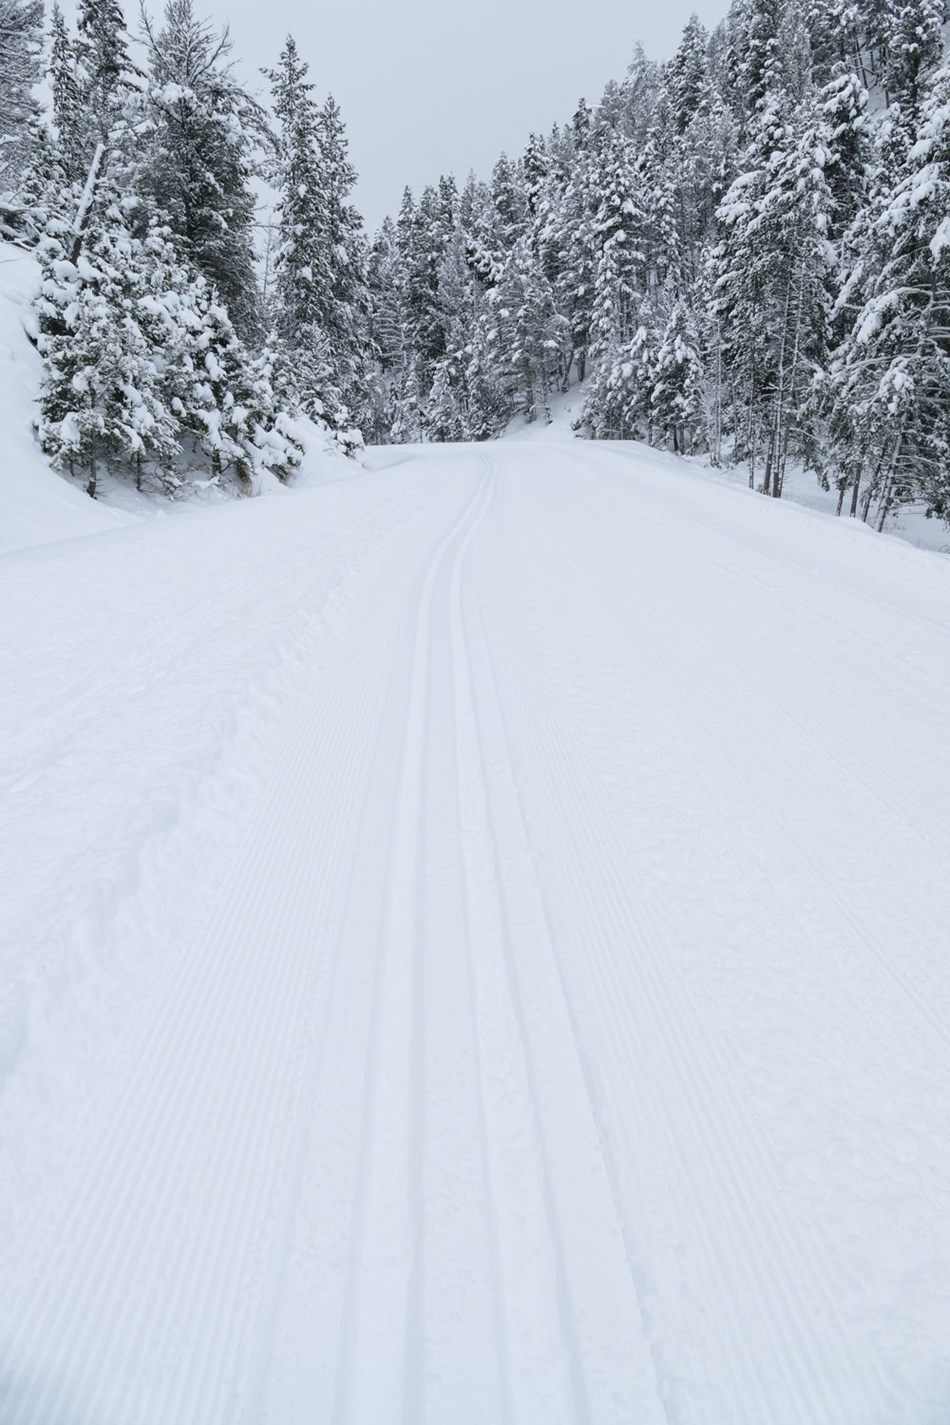 Recently groomed road with ski tracks along the road.